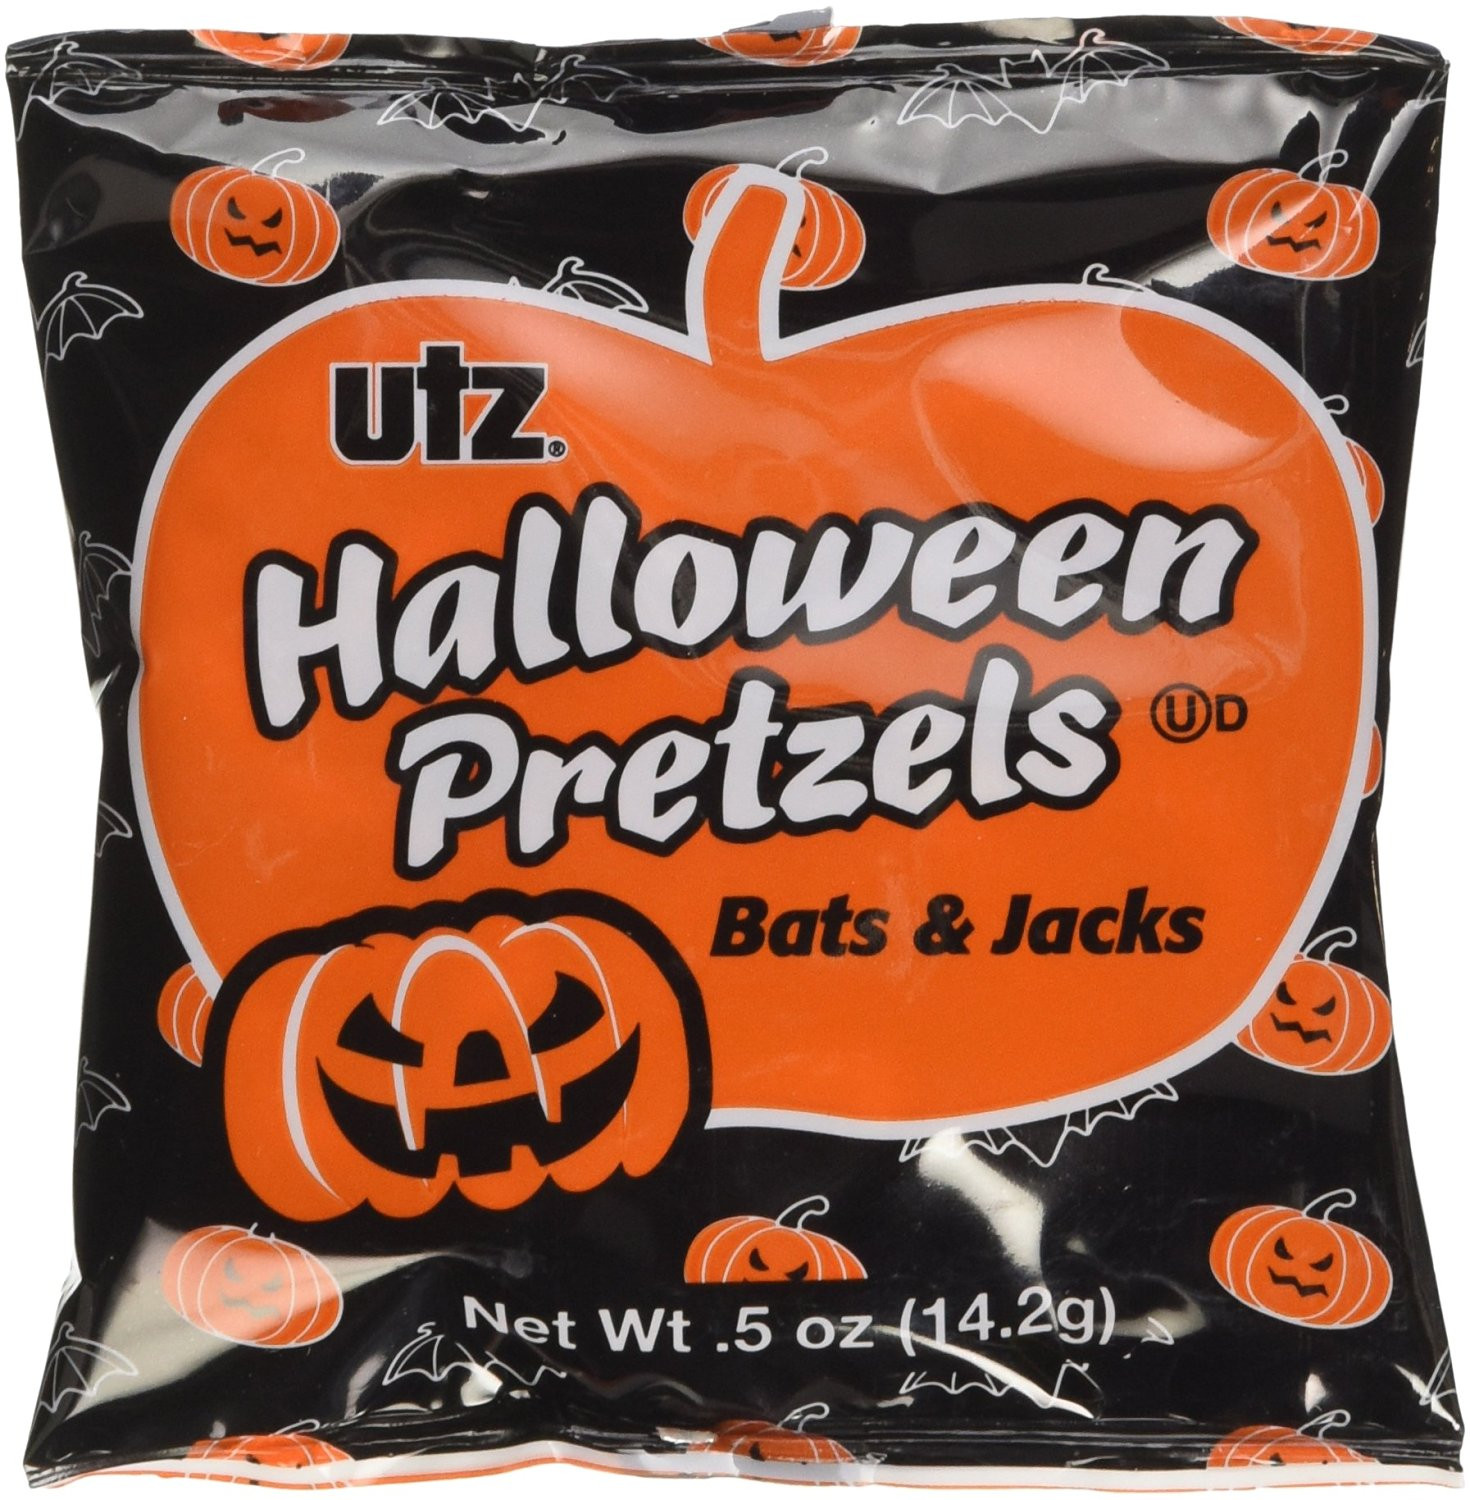 Utz Halloween Pretzels  20 savory Halloween treats we like even better than all